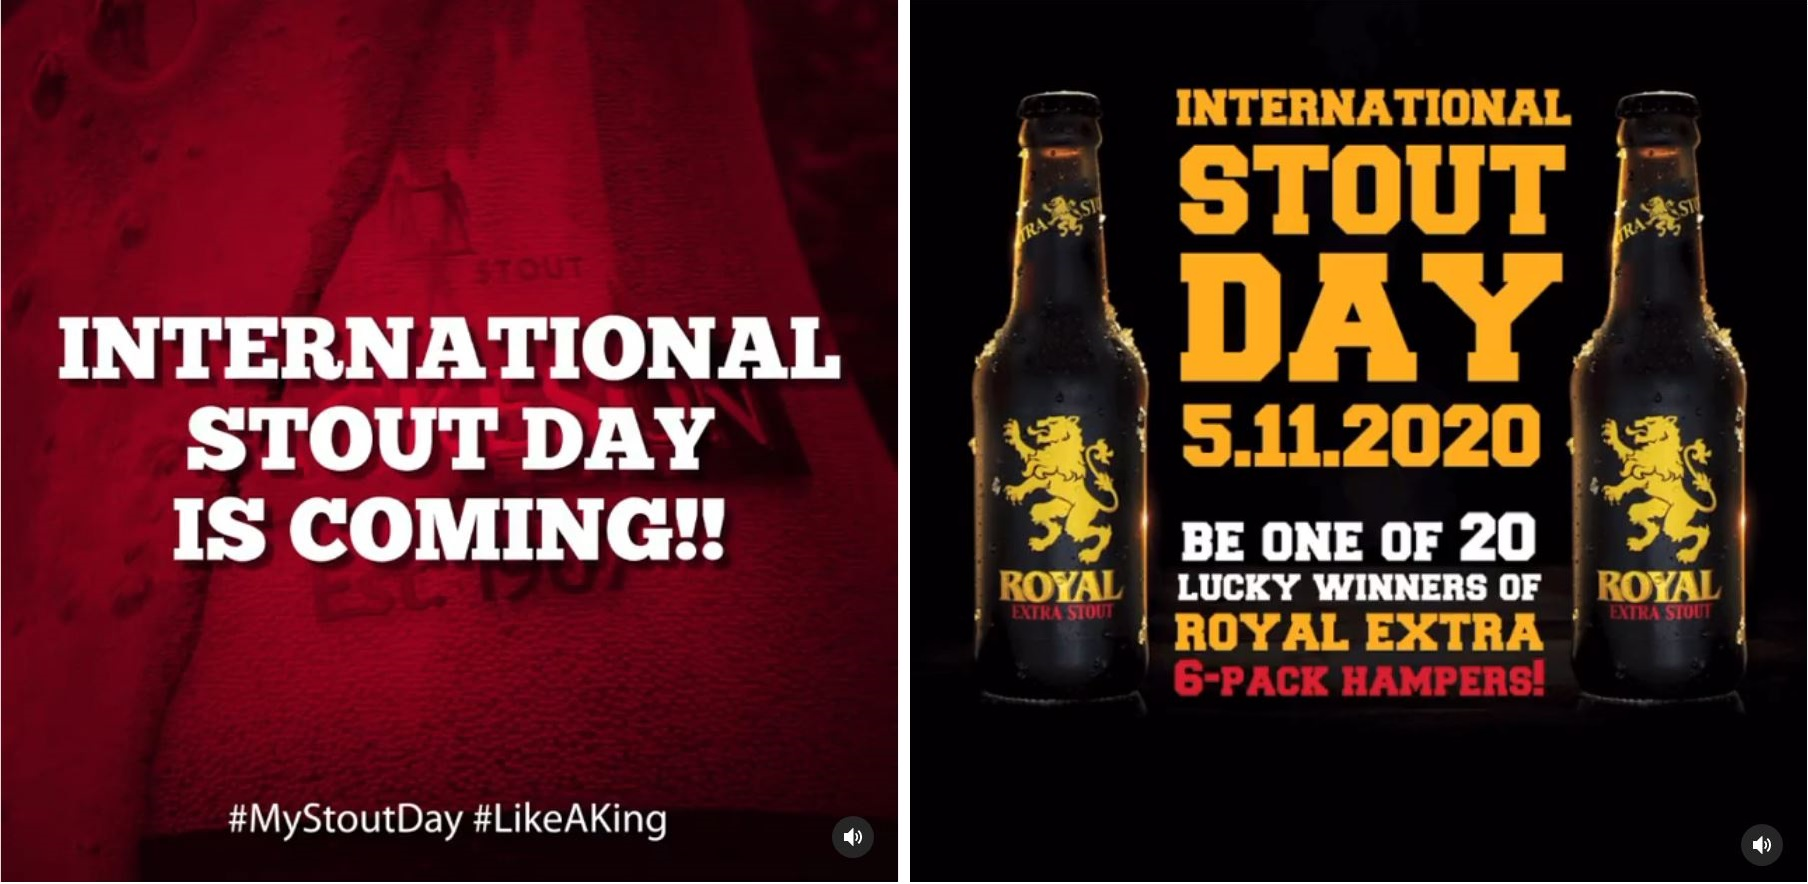 International Stout Day Trinidad and Tobago